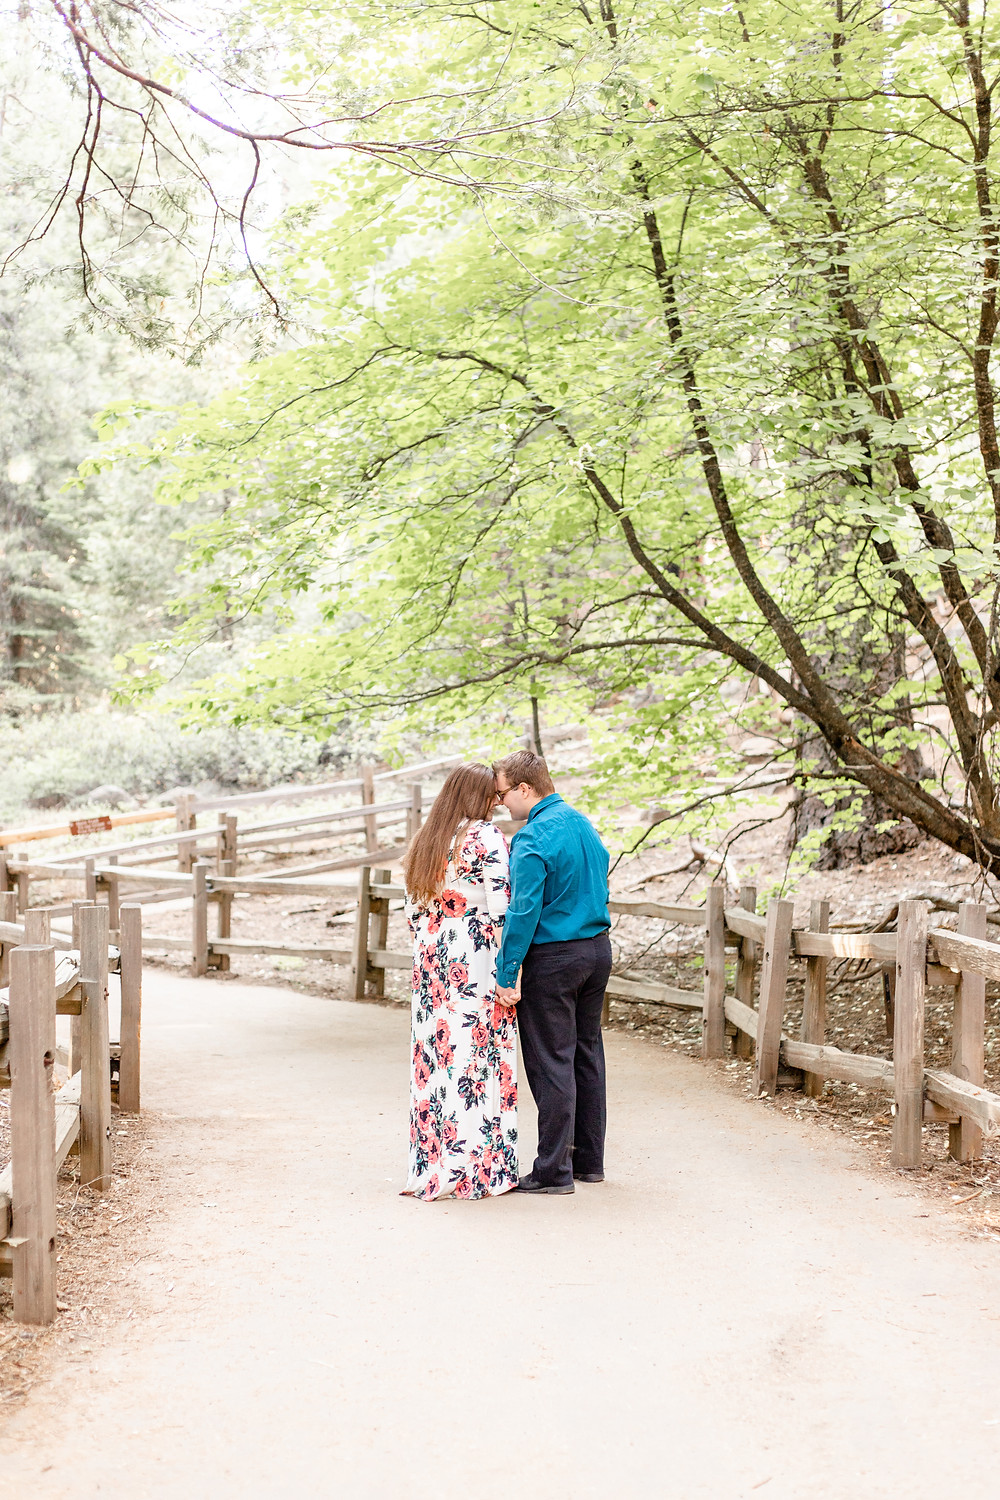 A couple's engagement session done by Ashley Norton Photography in California.